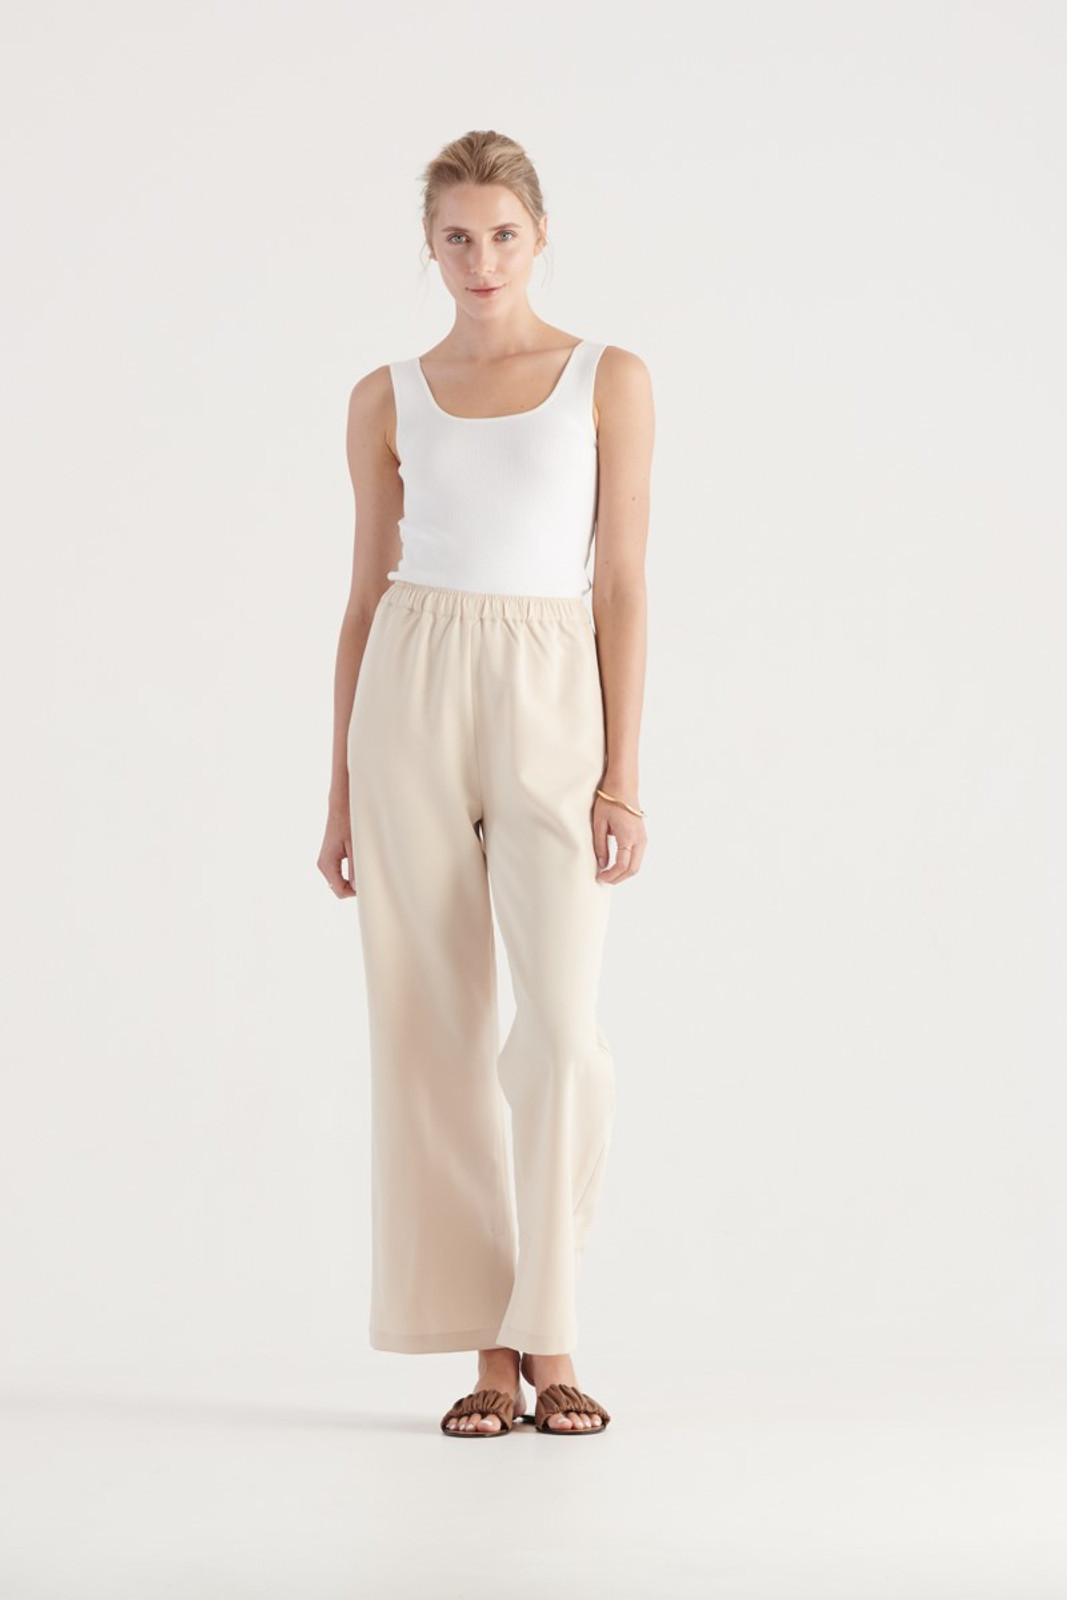 Elka Collective WOMENS Neutrals Olympia Pant 1